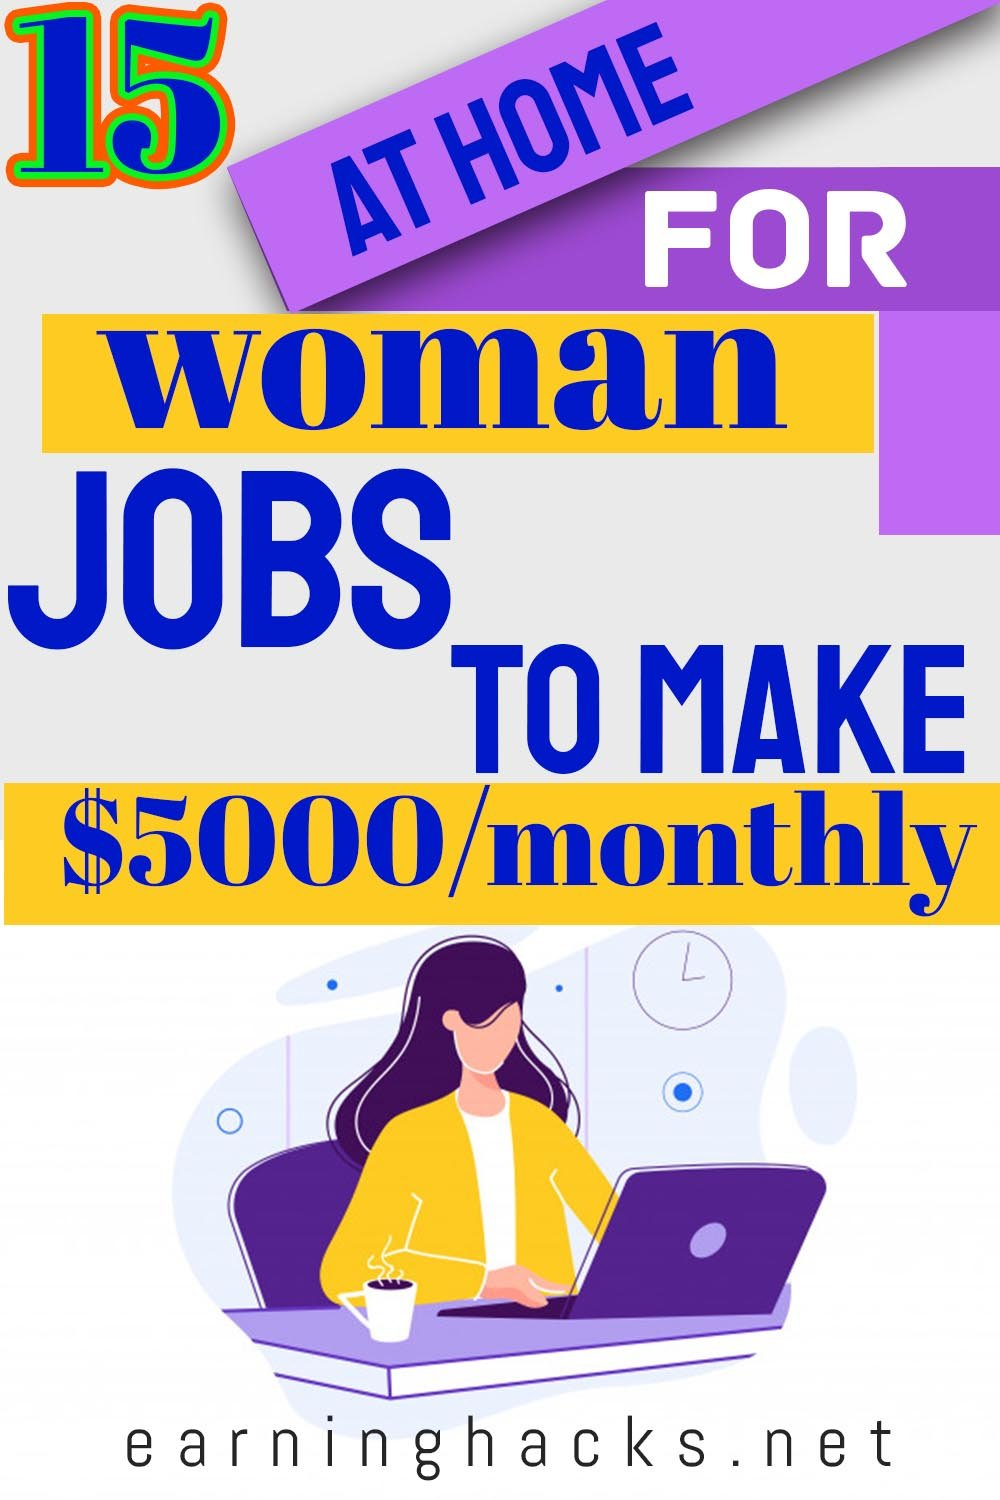 15 At Home For Woman Jobs To Make $5000 Month